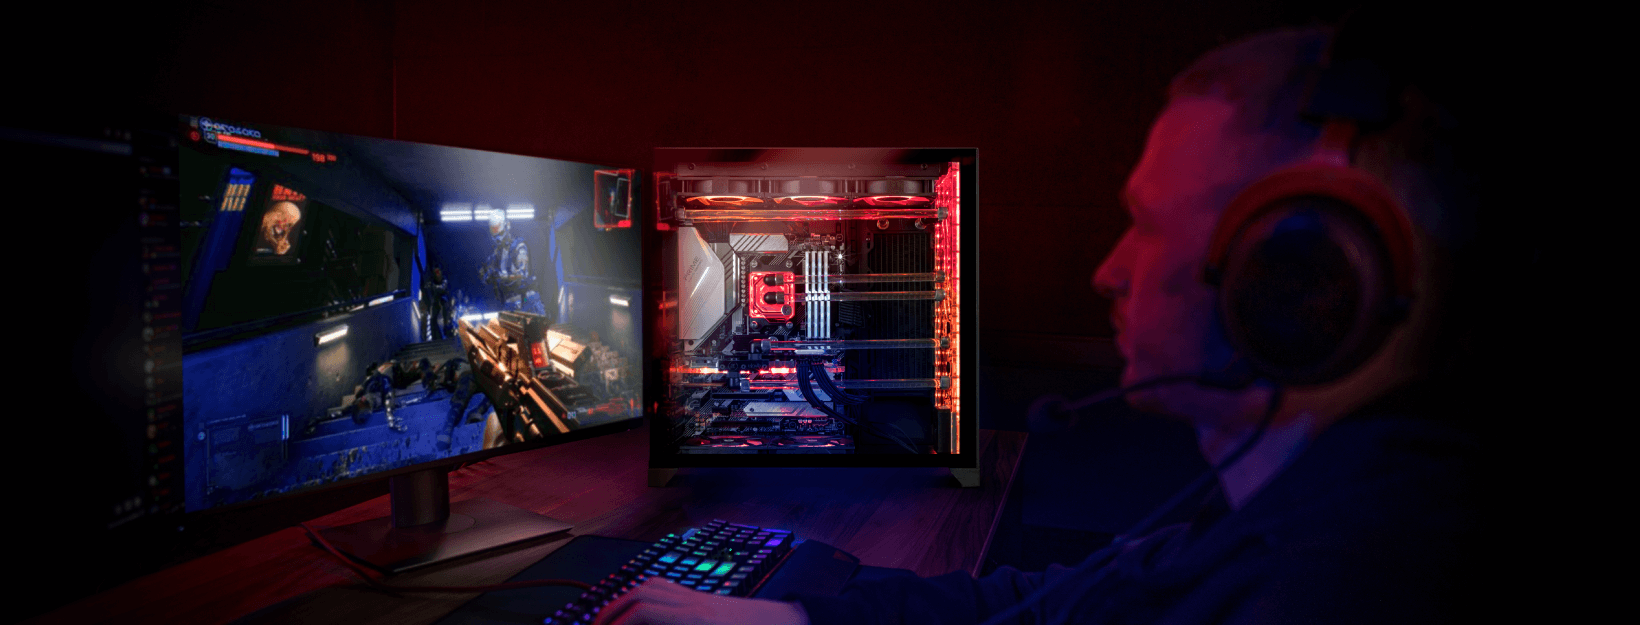 5 Best Free PC Games of 2021